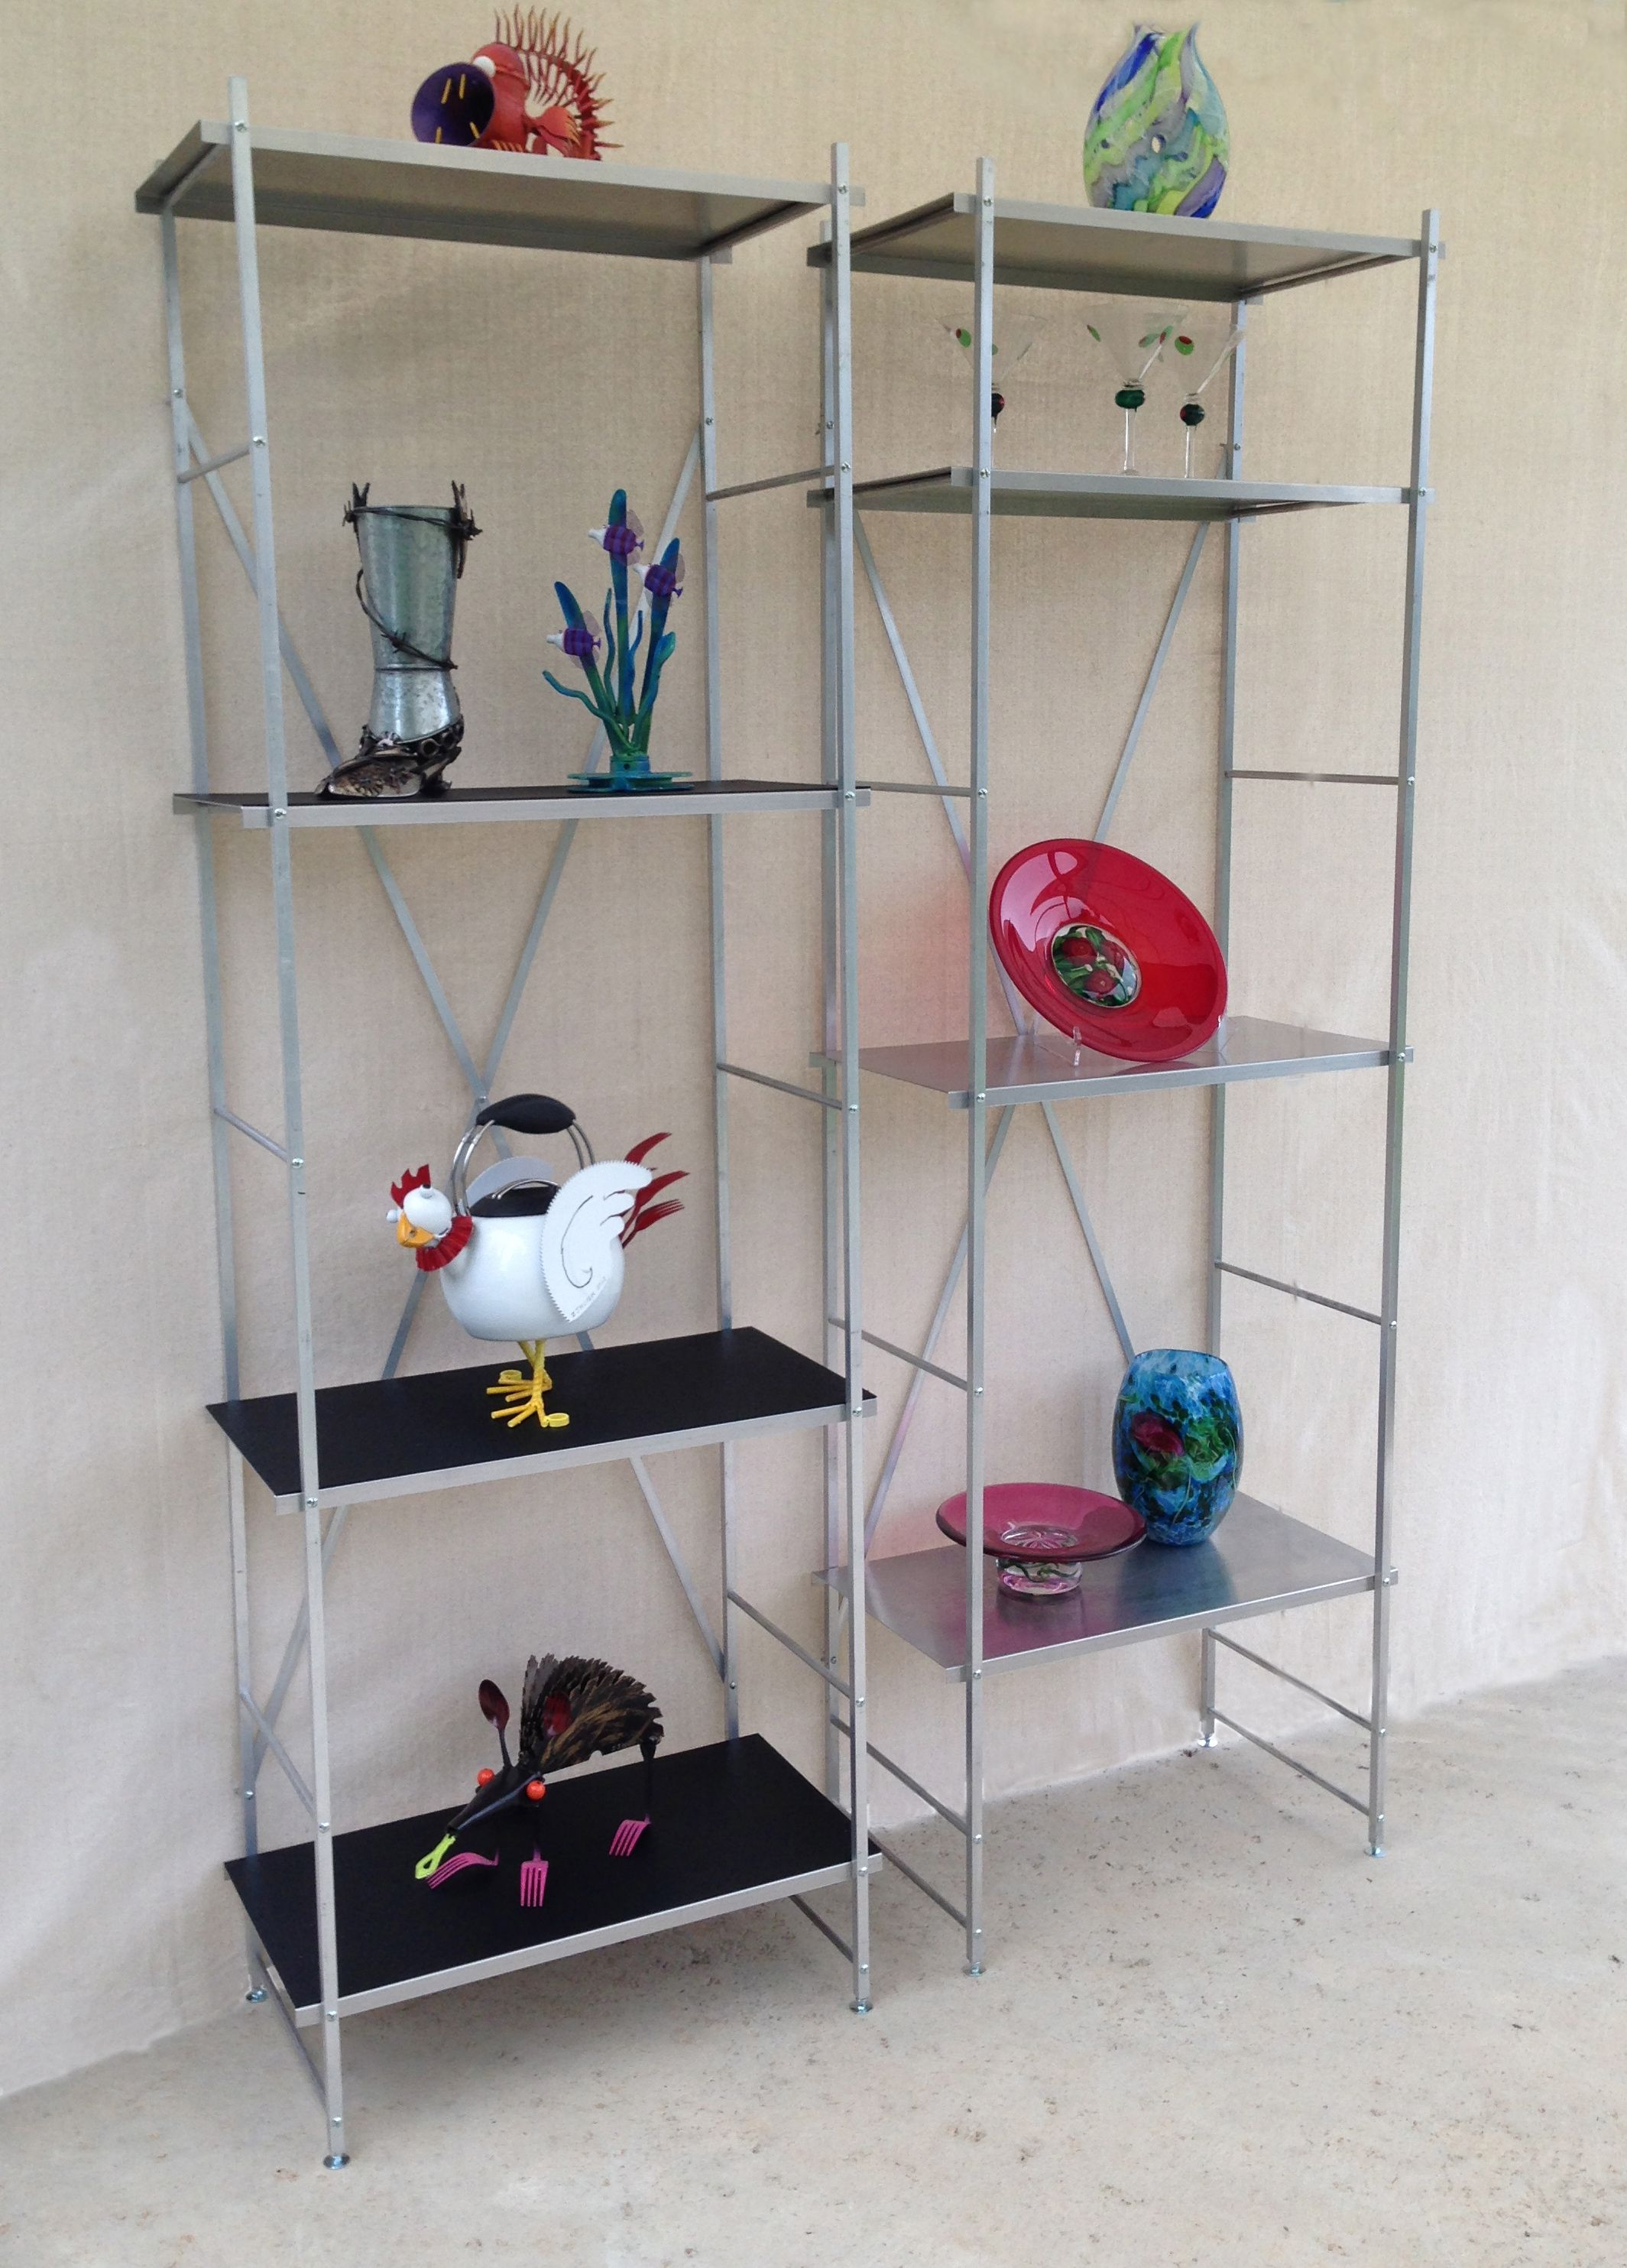 Announcing Our New Insta Shelves Portable, Collapsible